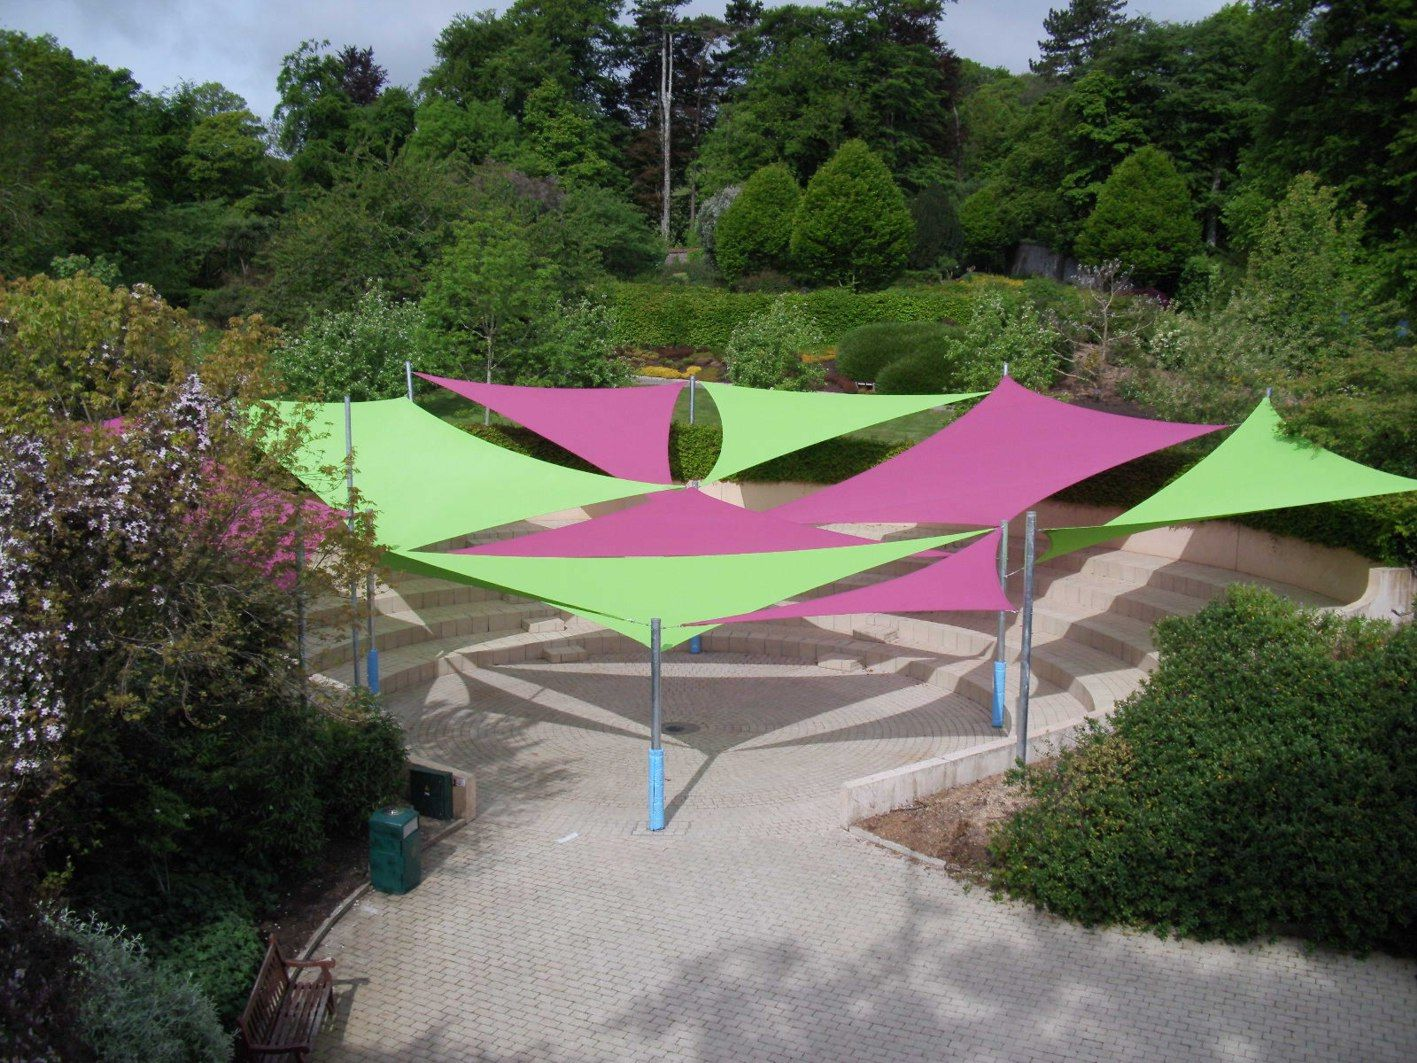 8 ways a shade sail can benefit your school able canopies. Black Bedroom Furniture Sets. Home Design Ideas